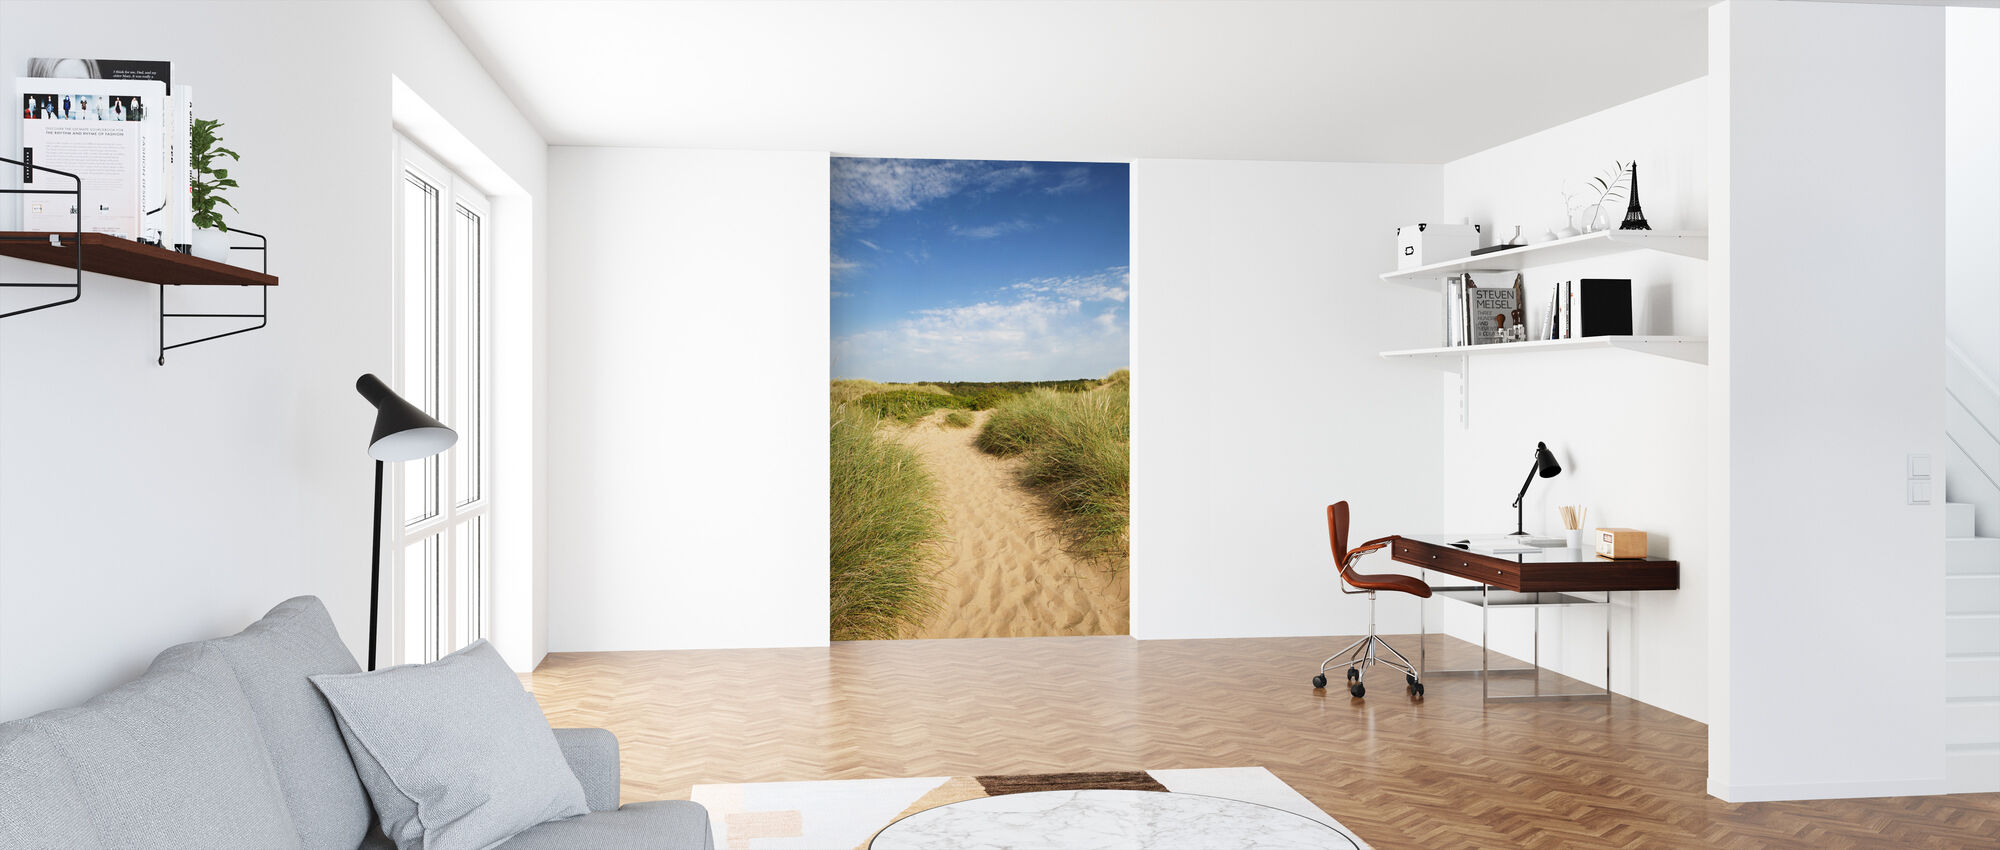 Beach in Tylösand, Sweden - Wallpaper - Office